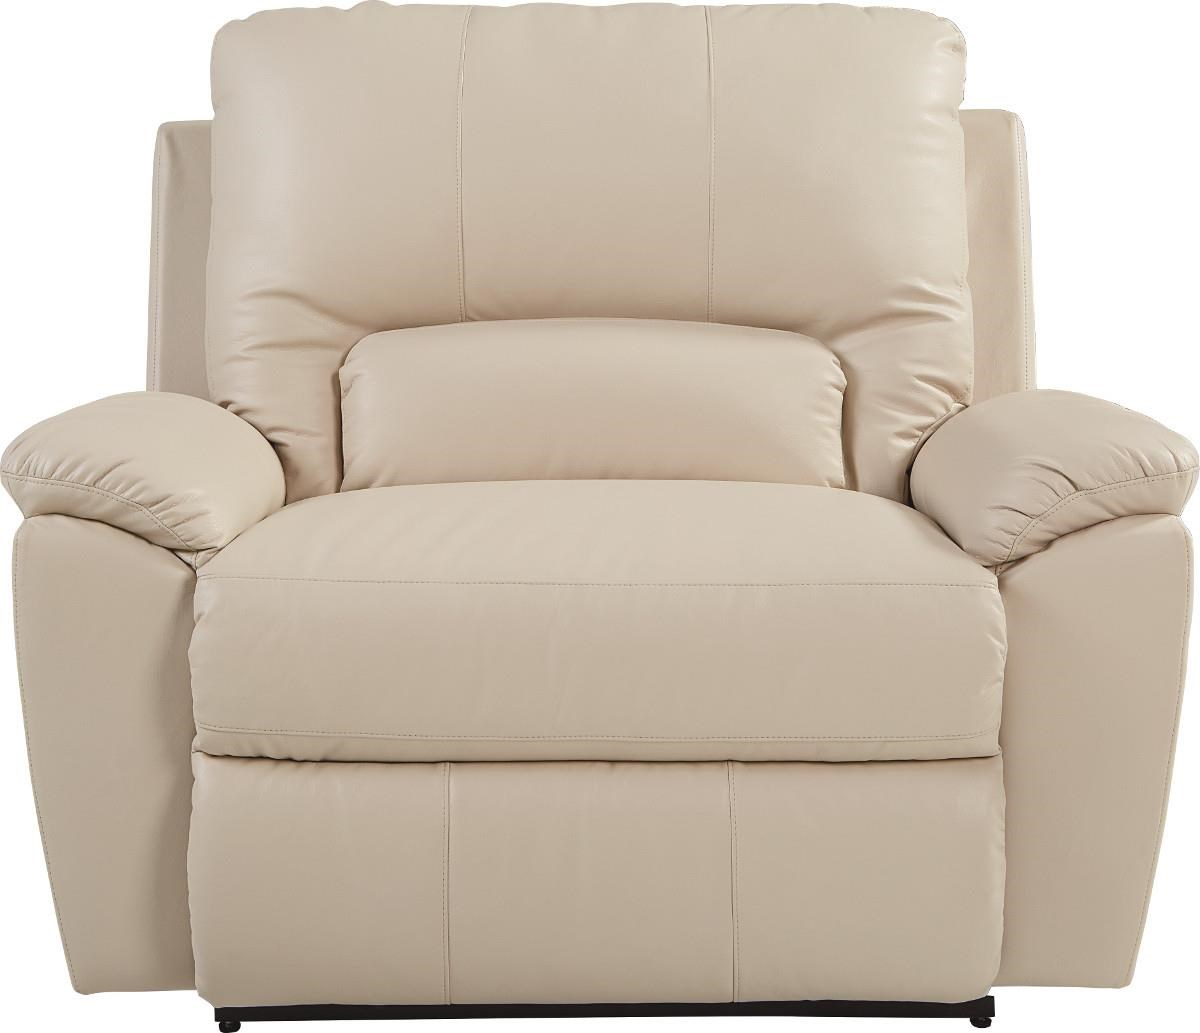 recliners chair and a half recliner shown may not represent exact features indicated recliners chair